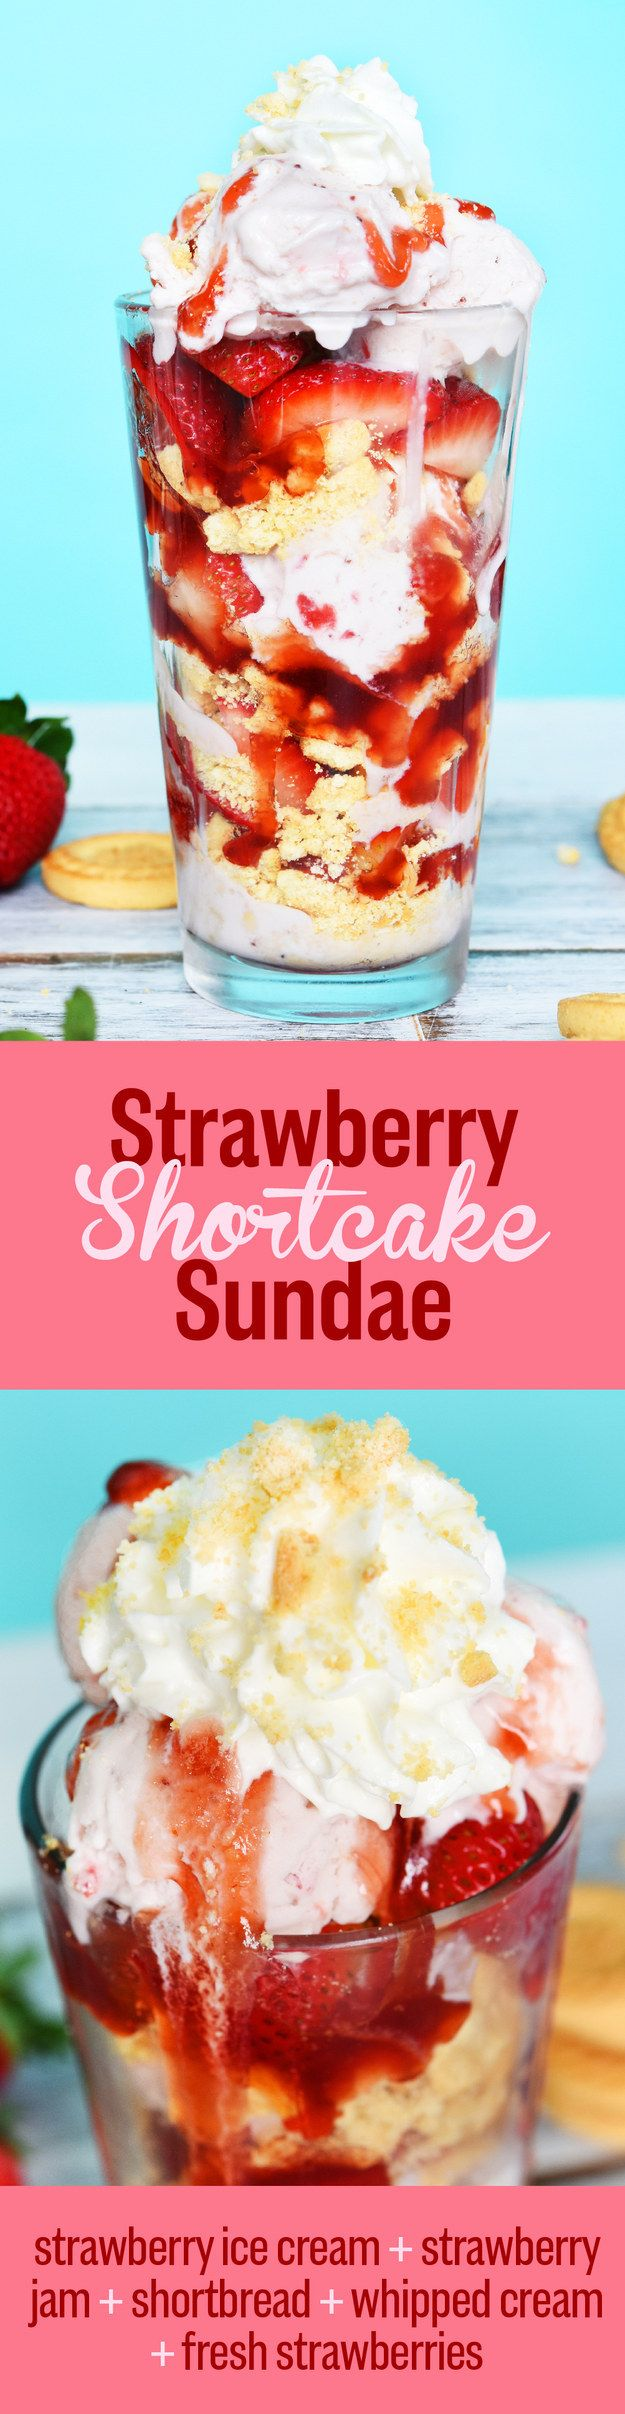 Strawberry Shortcake Sundae                                                                                                                                                      More